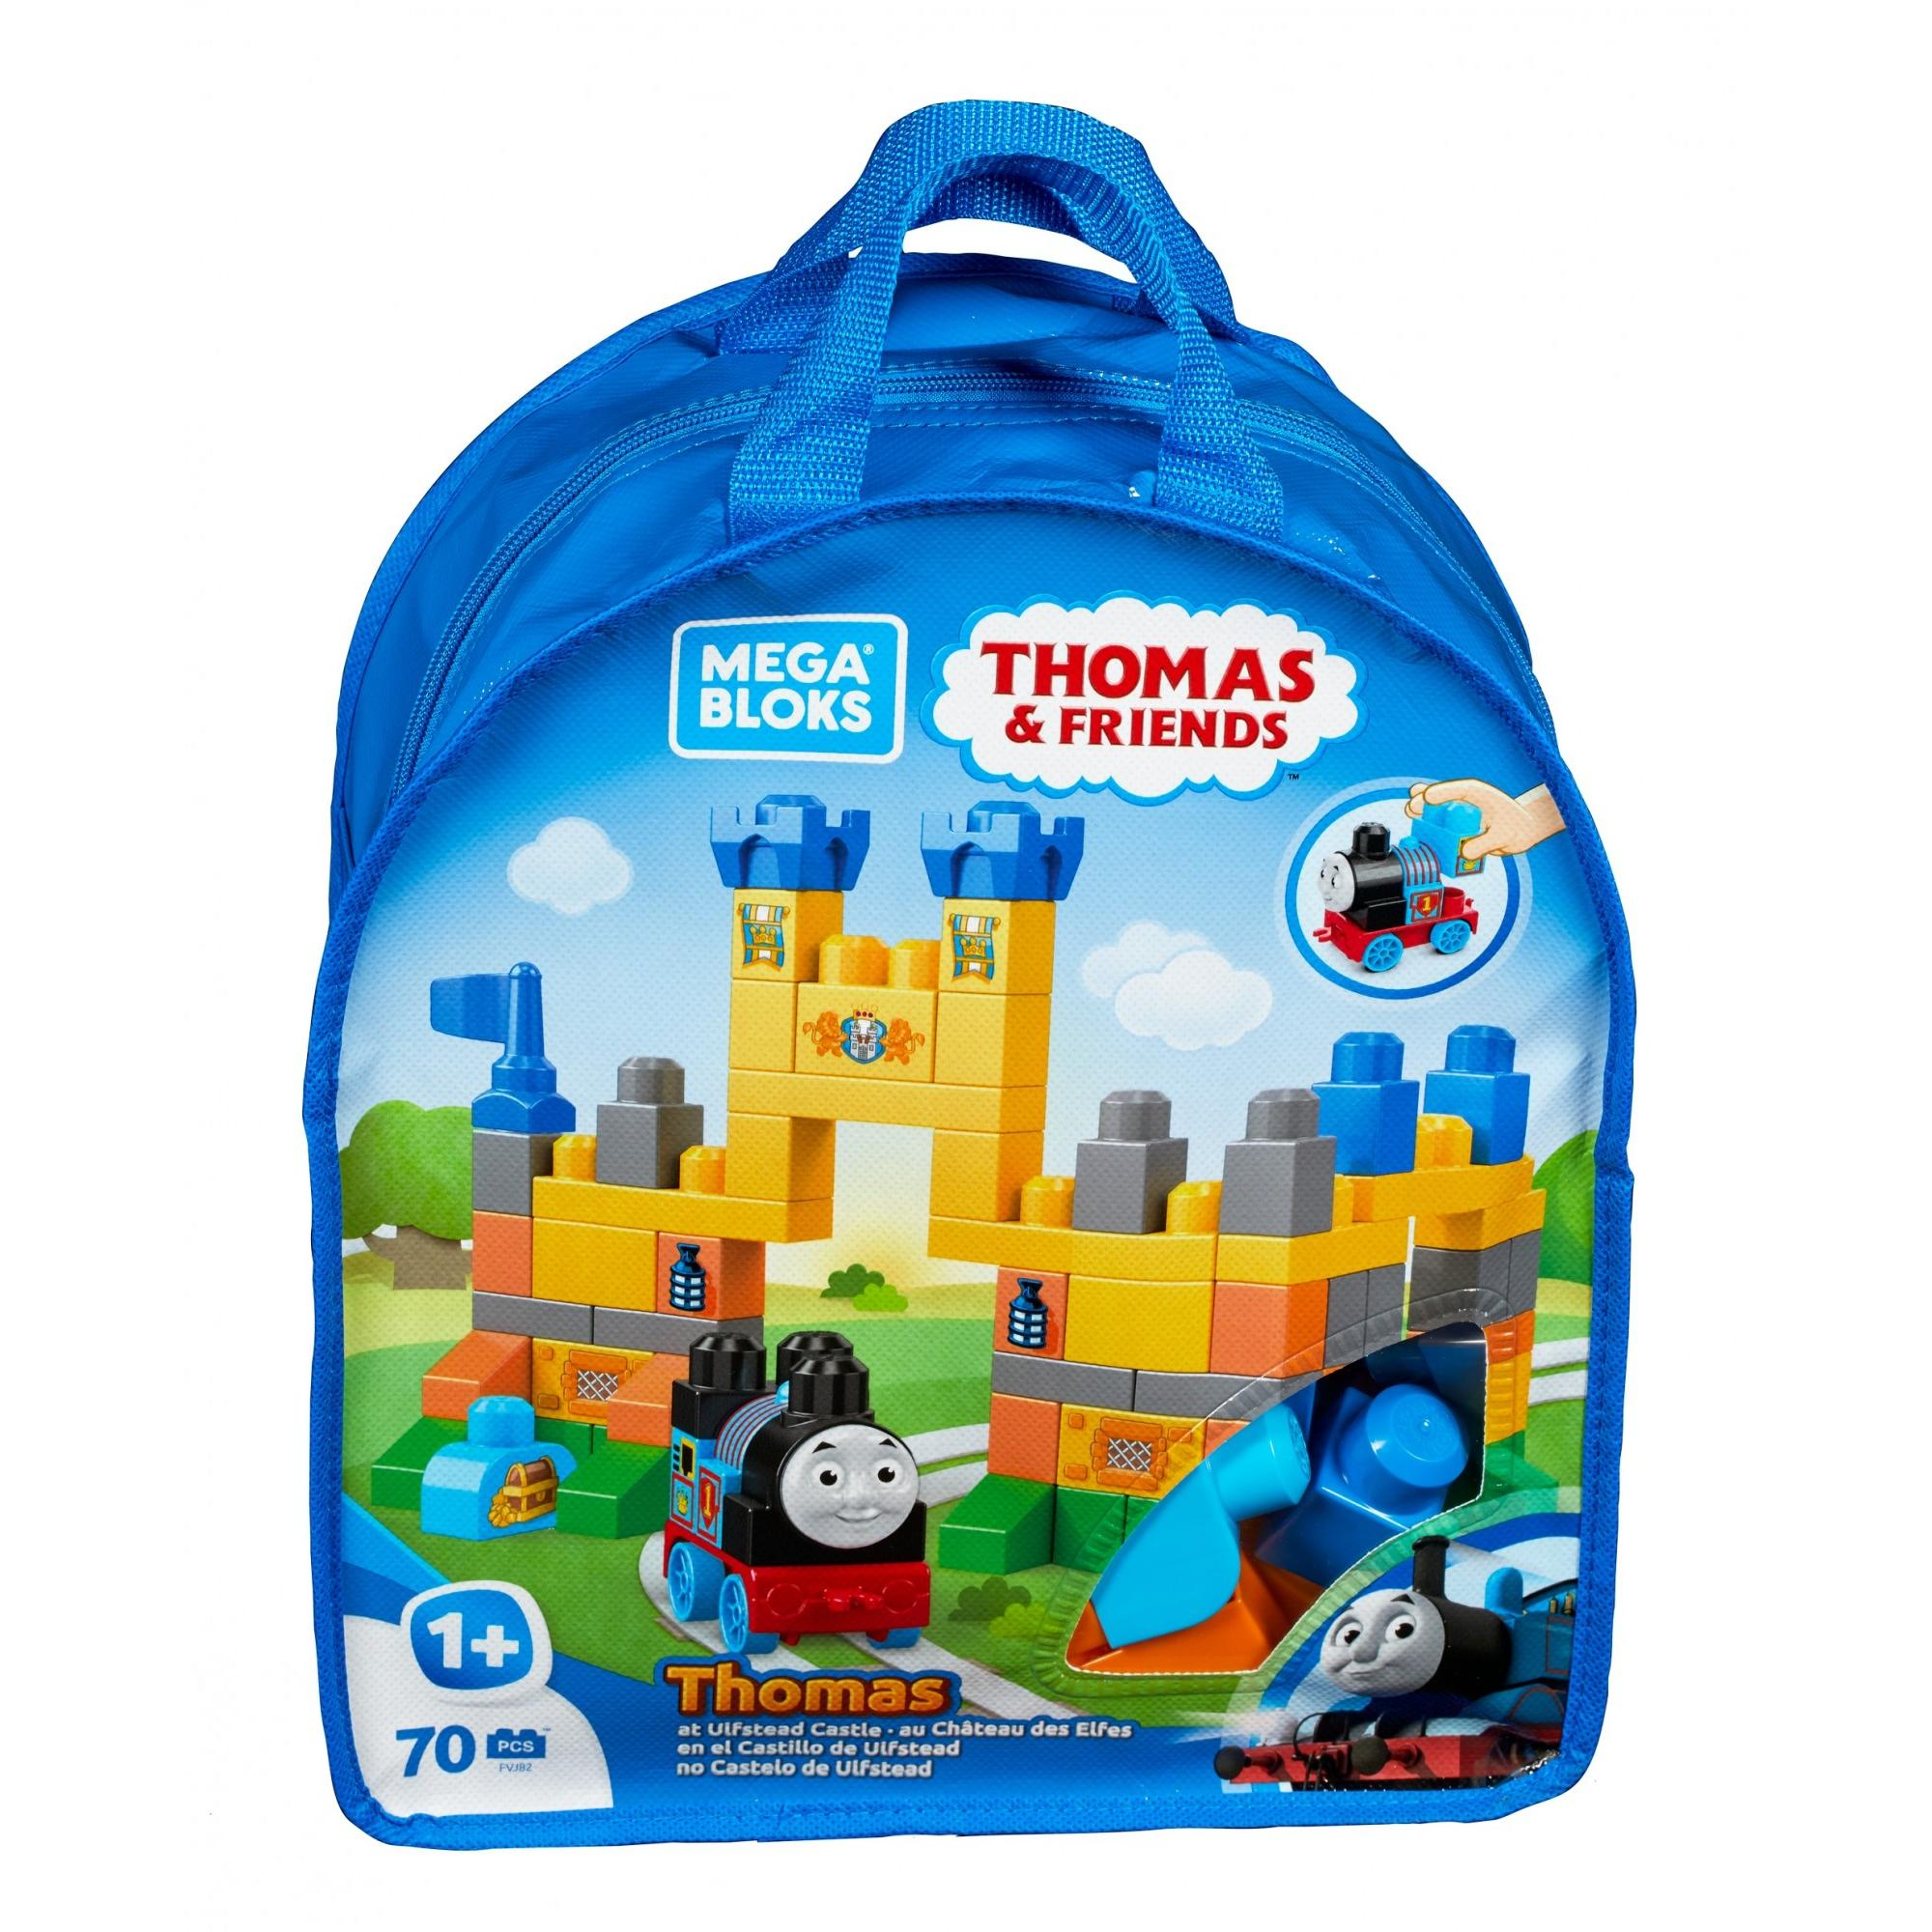 Mega Bloks Thomas & Friends Ulfstead Castle Building Set